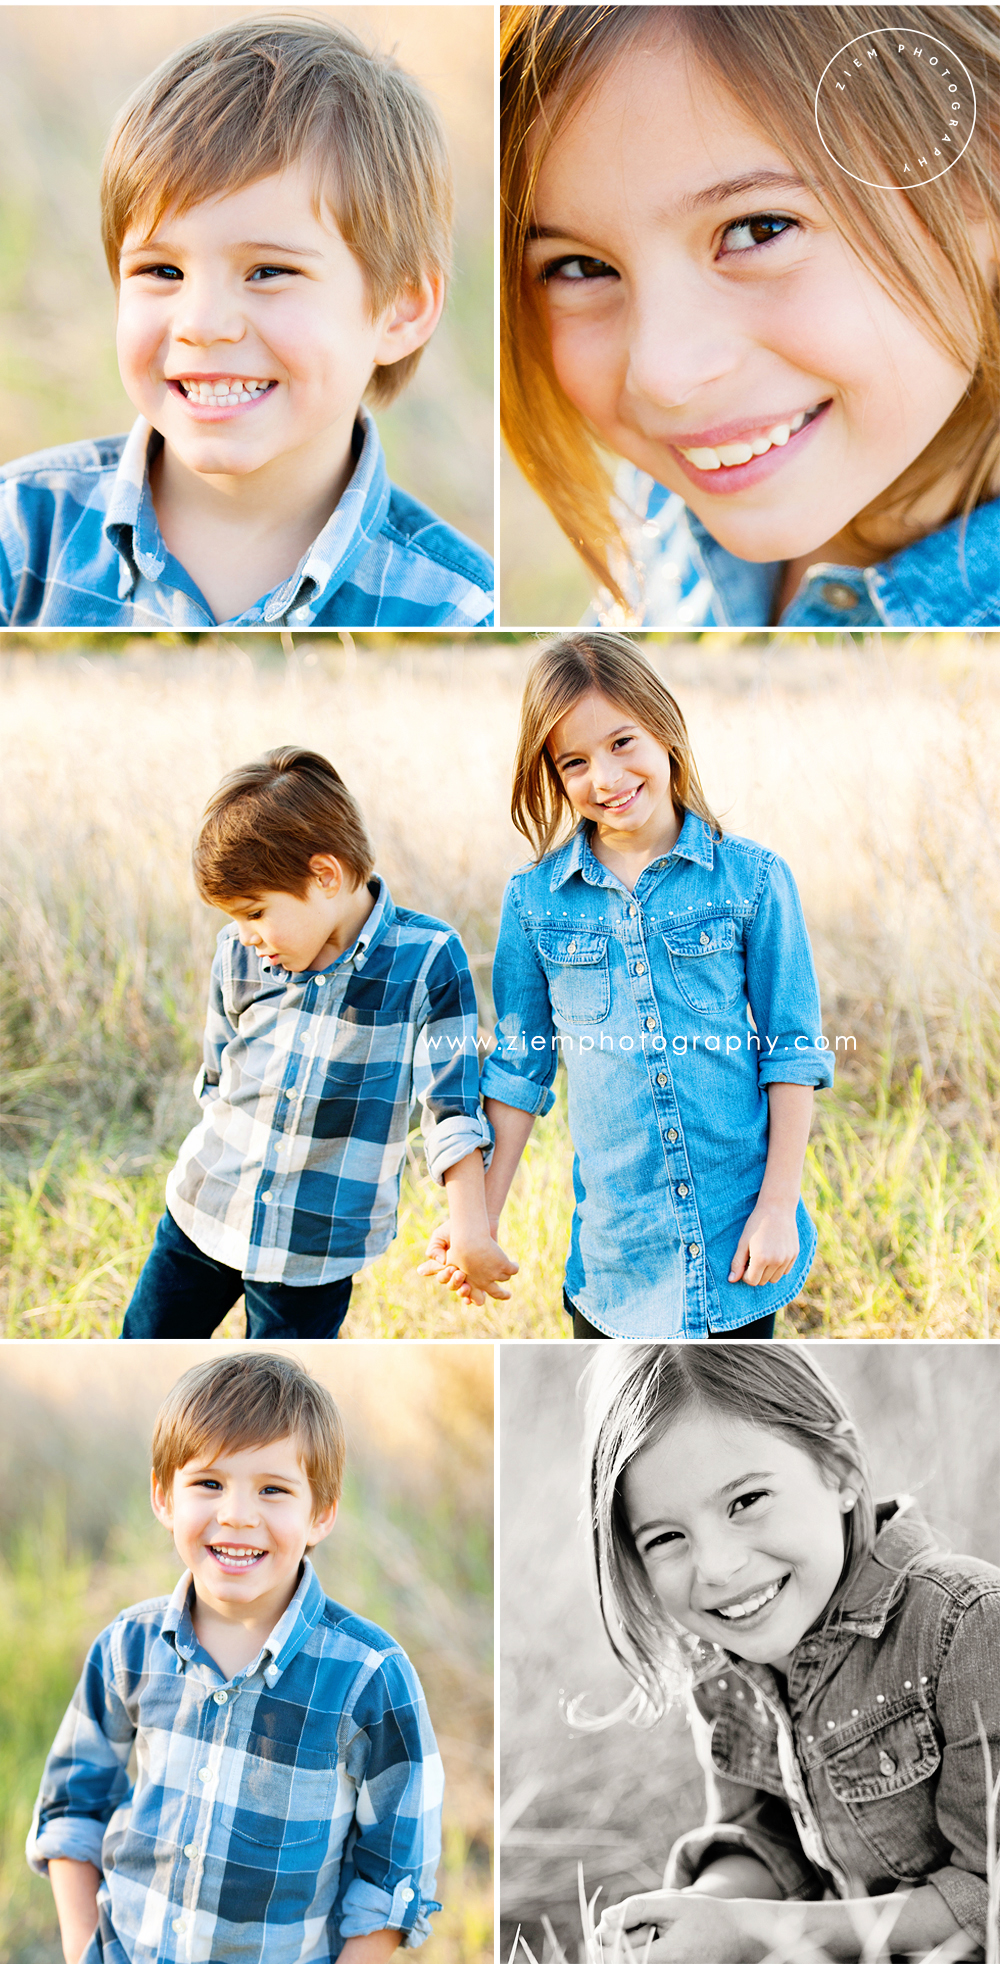 austin family photographer roos ziem photography